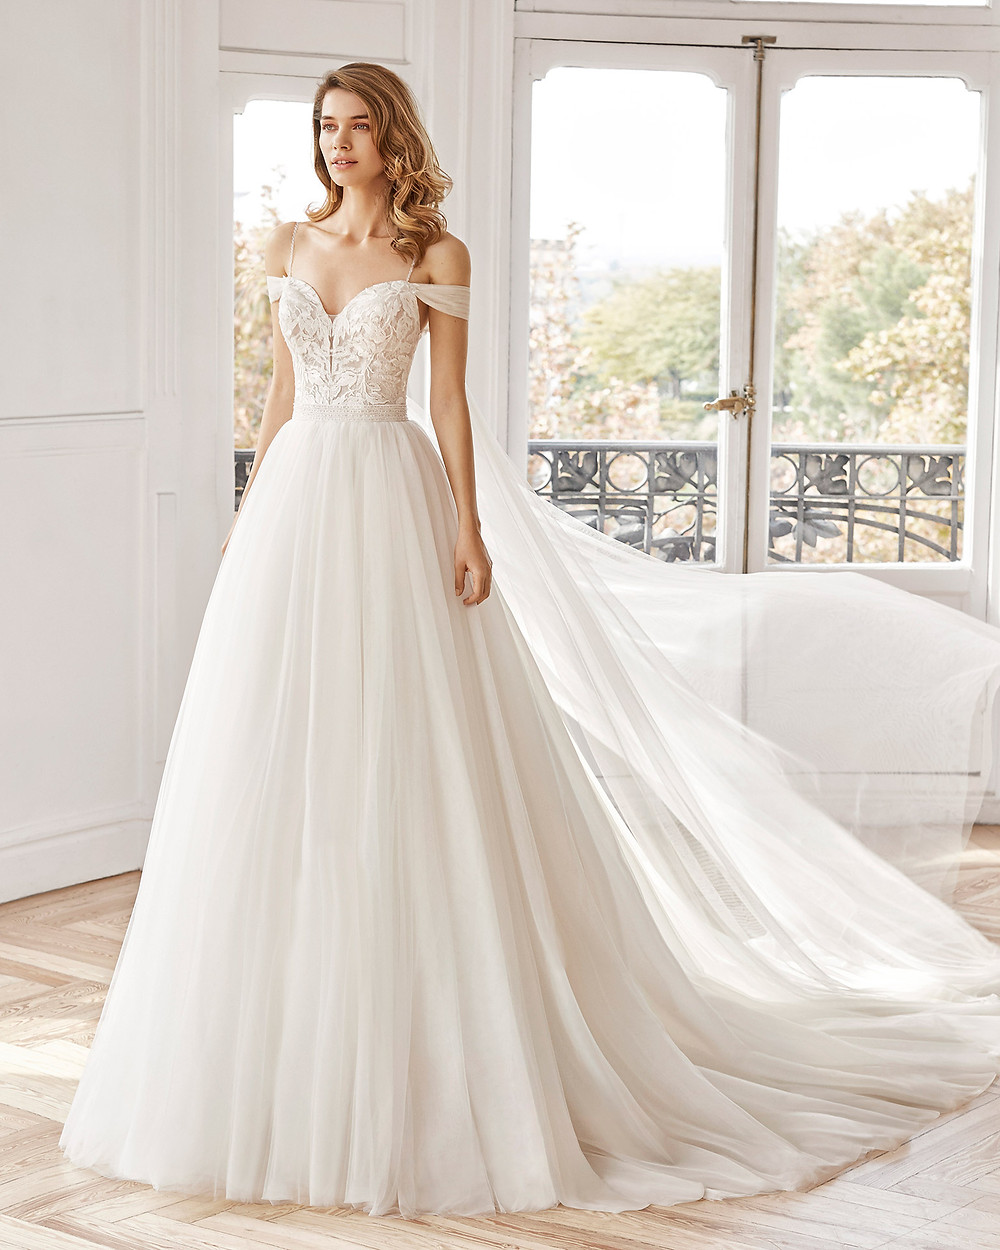 An Aire Barcelona 2020 ivory off the shoulder tulle and lace A-line wedding dress